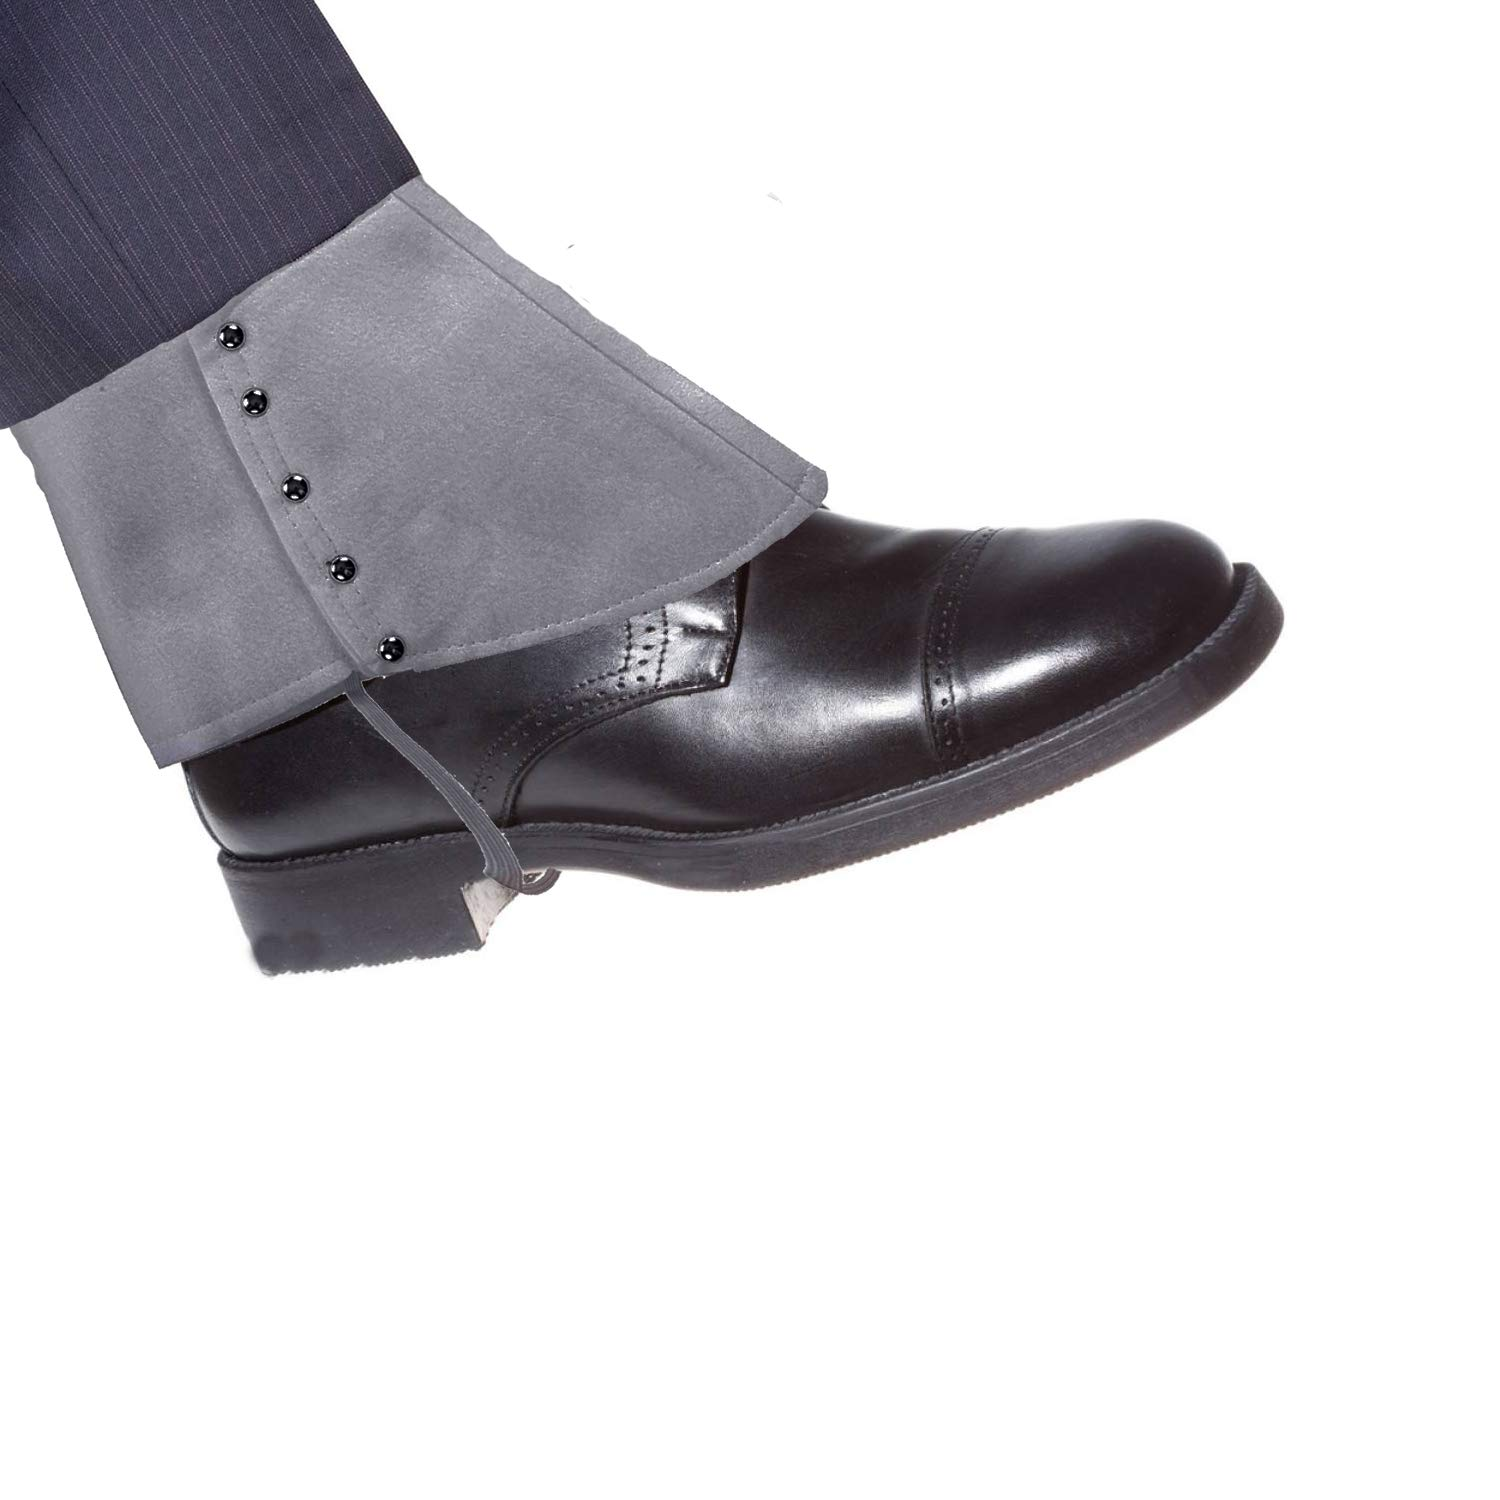 1920s Mens Costume Accessories - Gangster Spats for Shoes Grey)